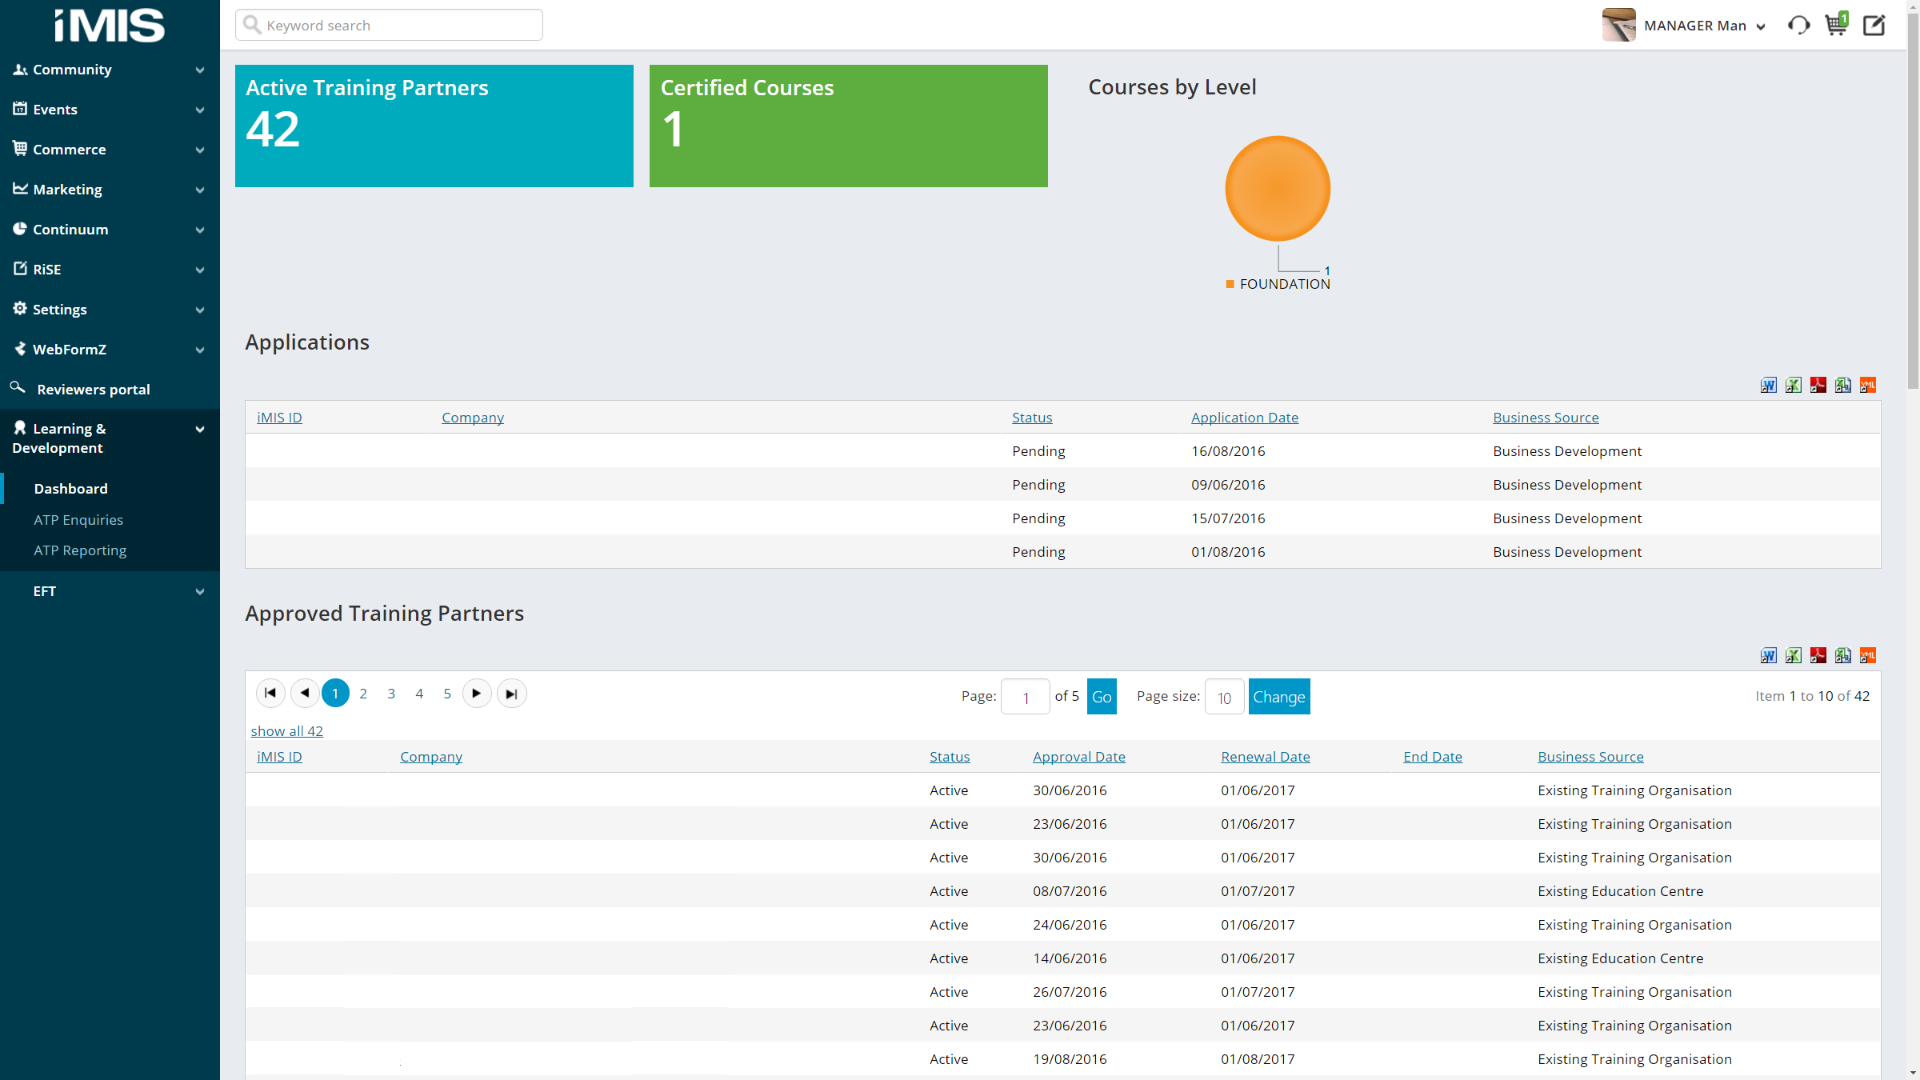 A preview of the upgraded iMIS database for CQI